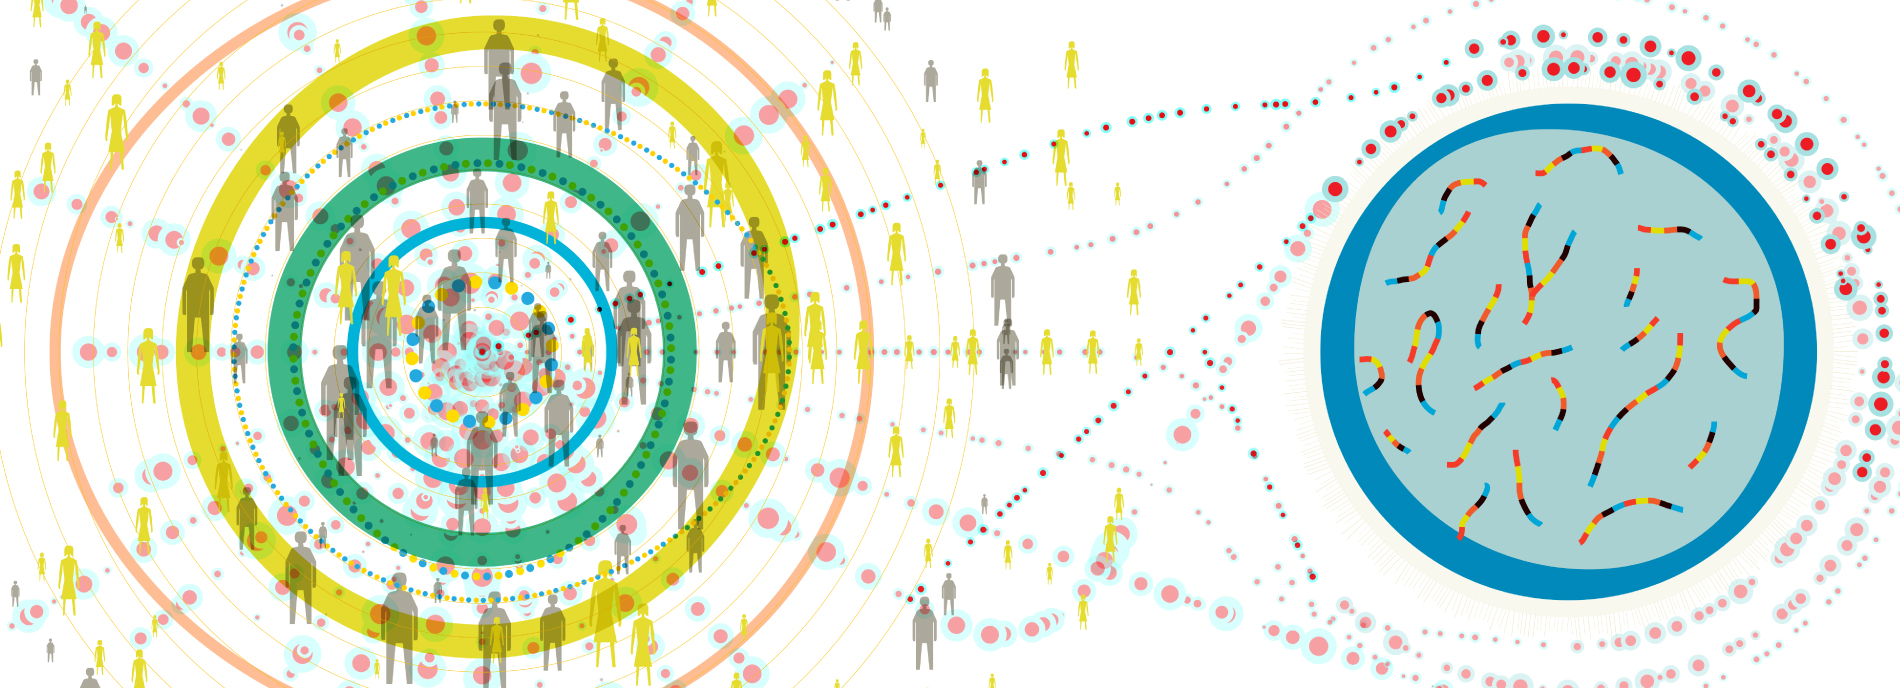 Illustration showing large group of people in a shape suggestive of a GWAS visual, connected to a pertri dish. The image is suggestive of large scale genetics research.